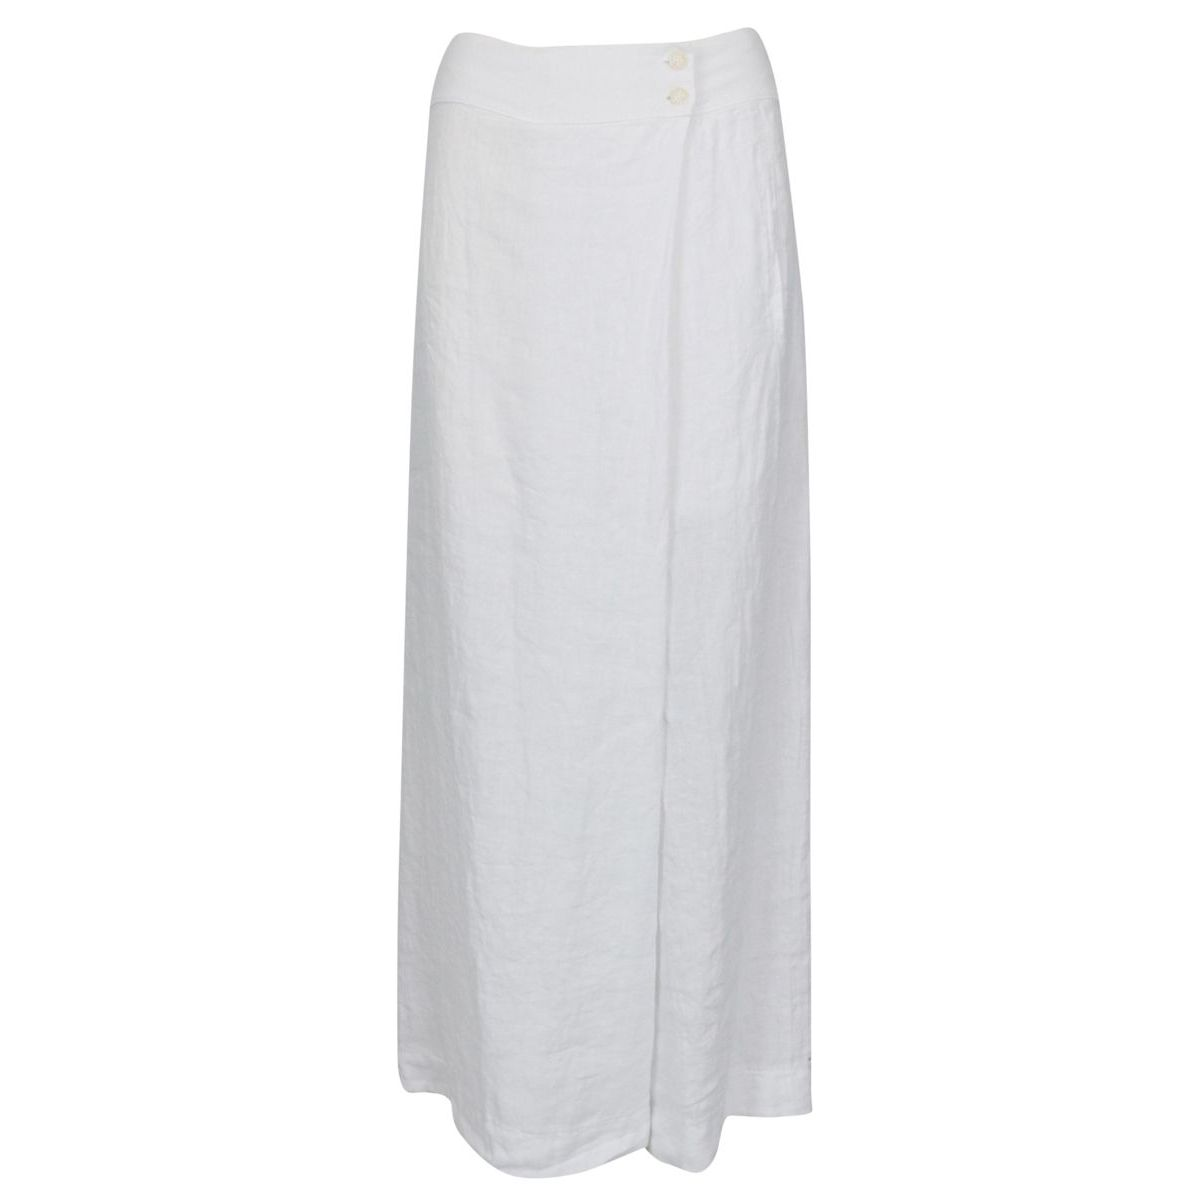 Linen trousers skirt with buttons at the waist White Alpha Studio